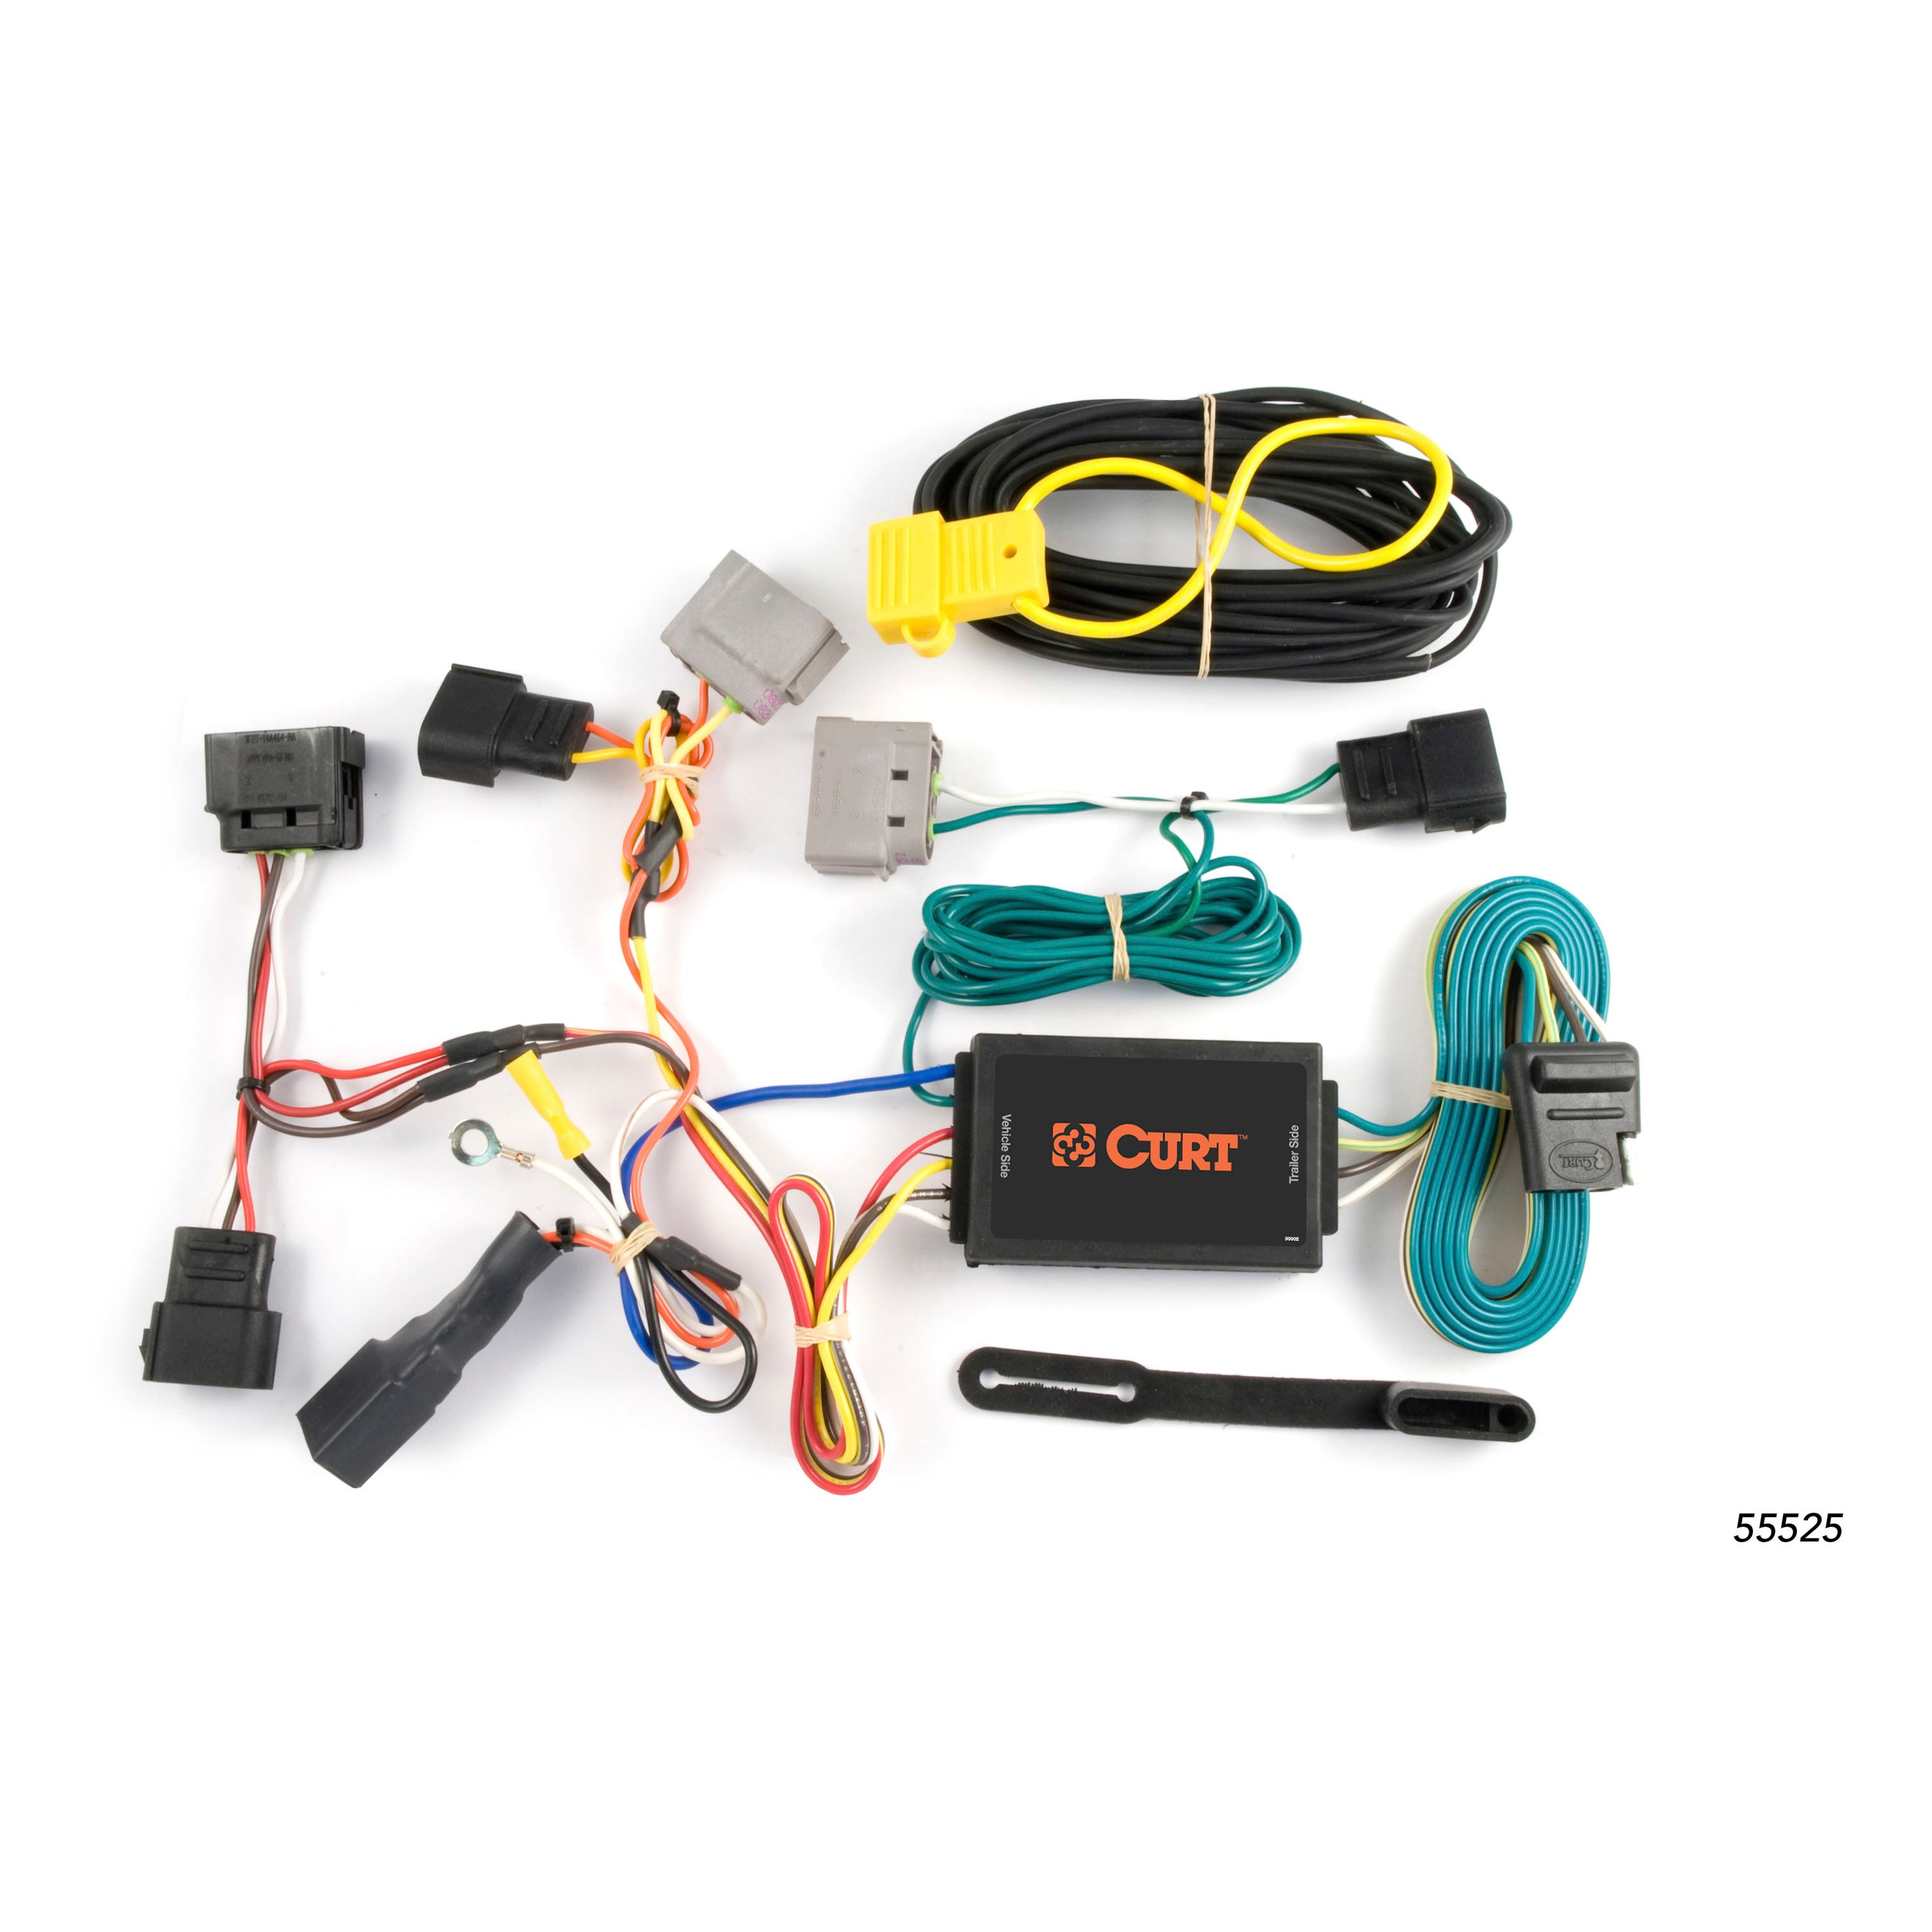 curt custom vehicle to trailer wiring harness 55525 for 2003 ford curt custom vehicle to trailer wiring harness 55525 for 2003 ford windstar